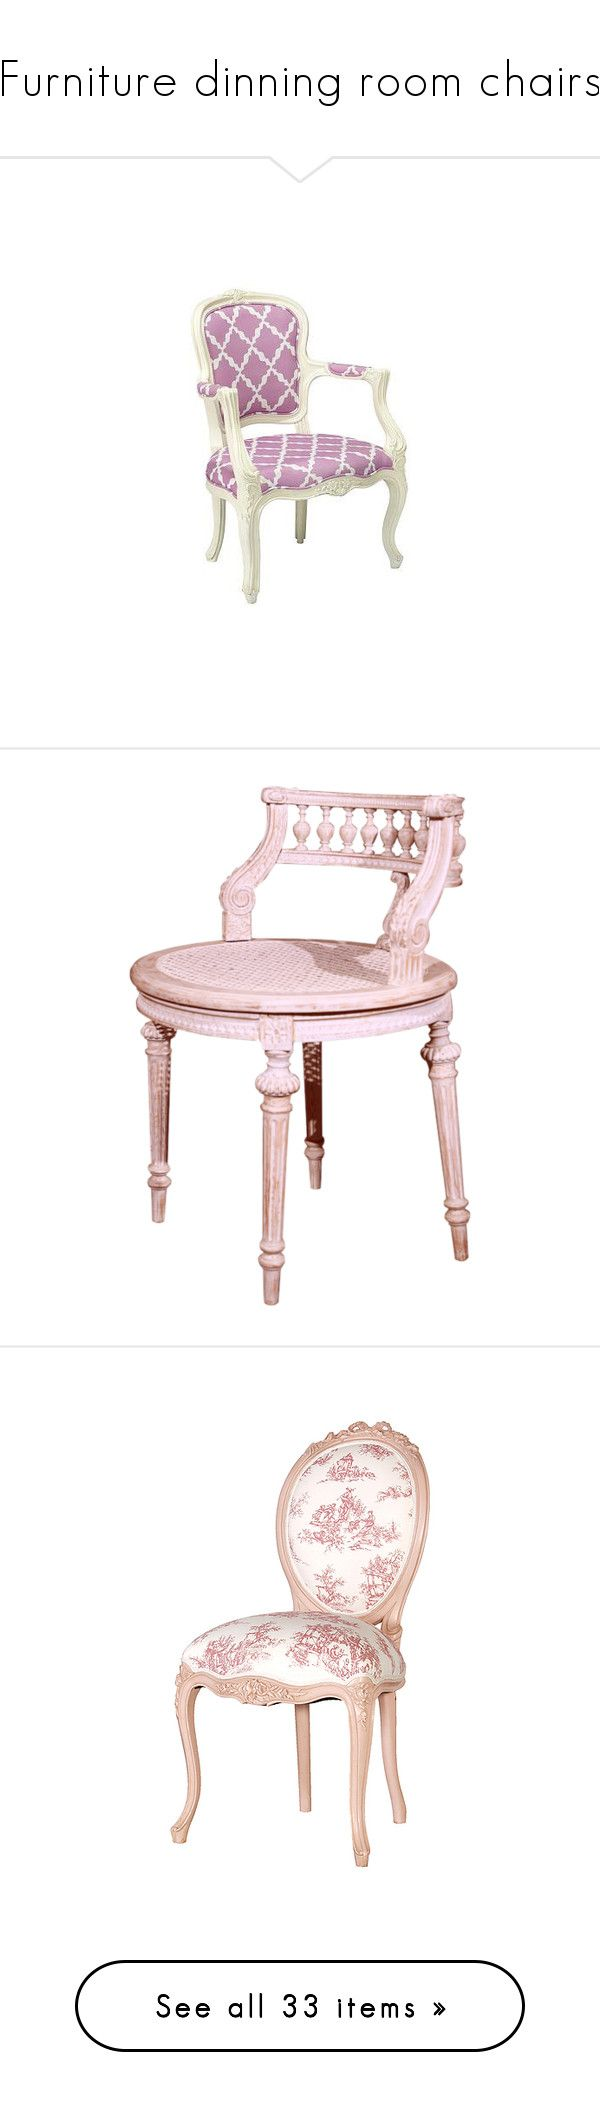 """""""Furniture dinning room chairs"""" by booboored ❤ liked on Polyvore featuring home, furniture, purple furniture, chairs, pink, arredamento, filler, accent chairs, fillers and pink furniture"""